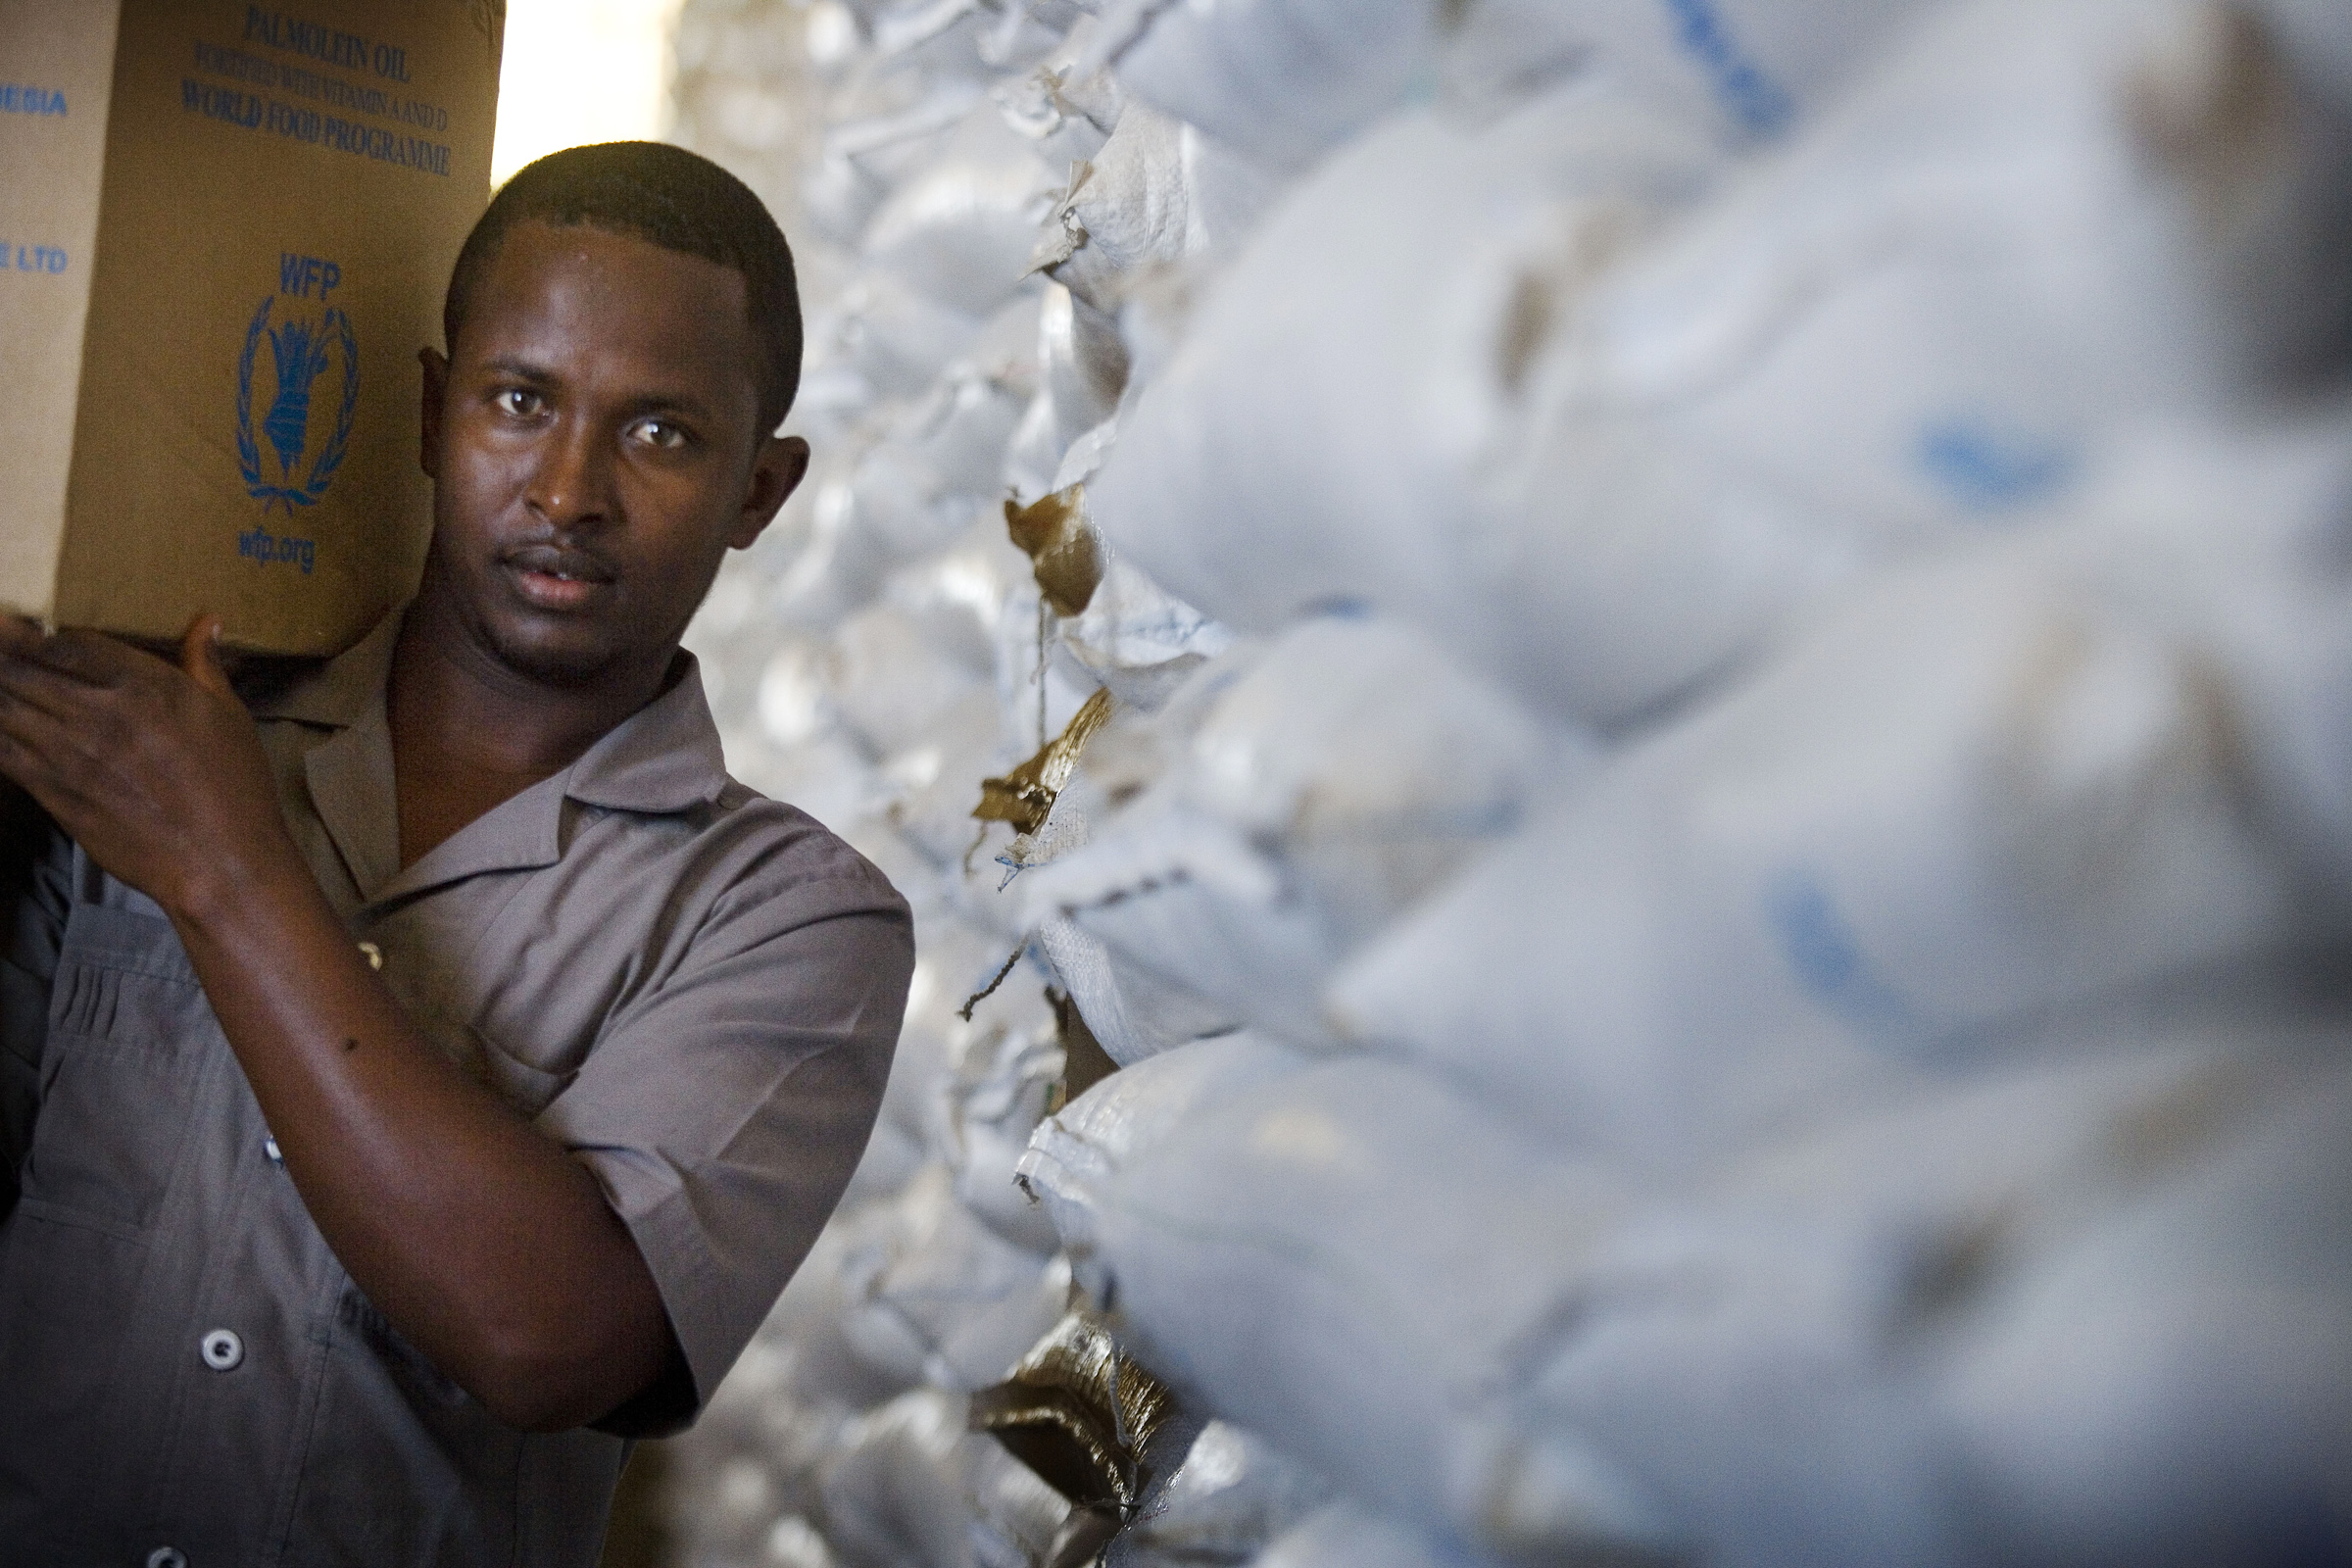 Relief food at a WFP warehouse in Mogadishu, Somalia